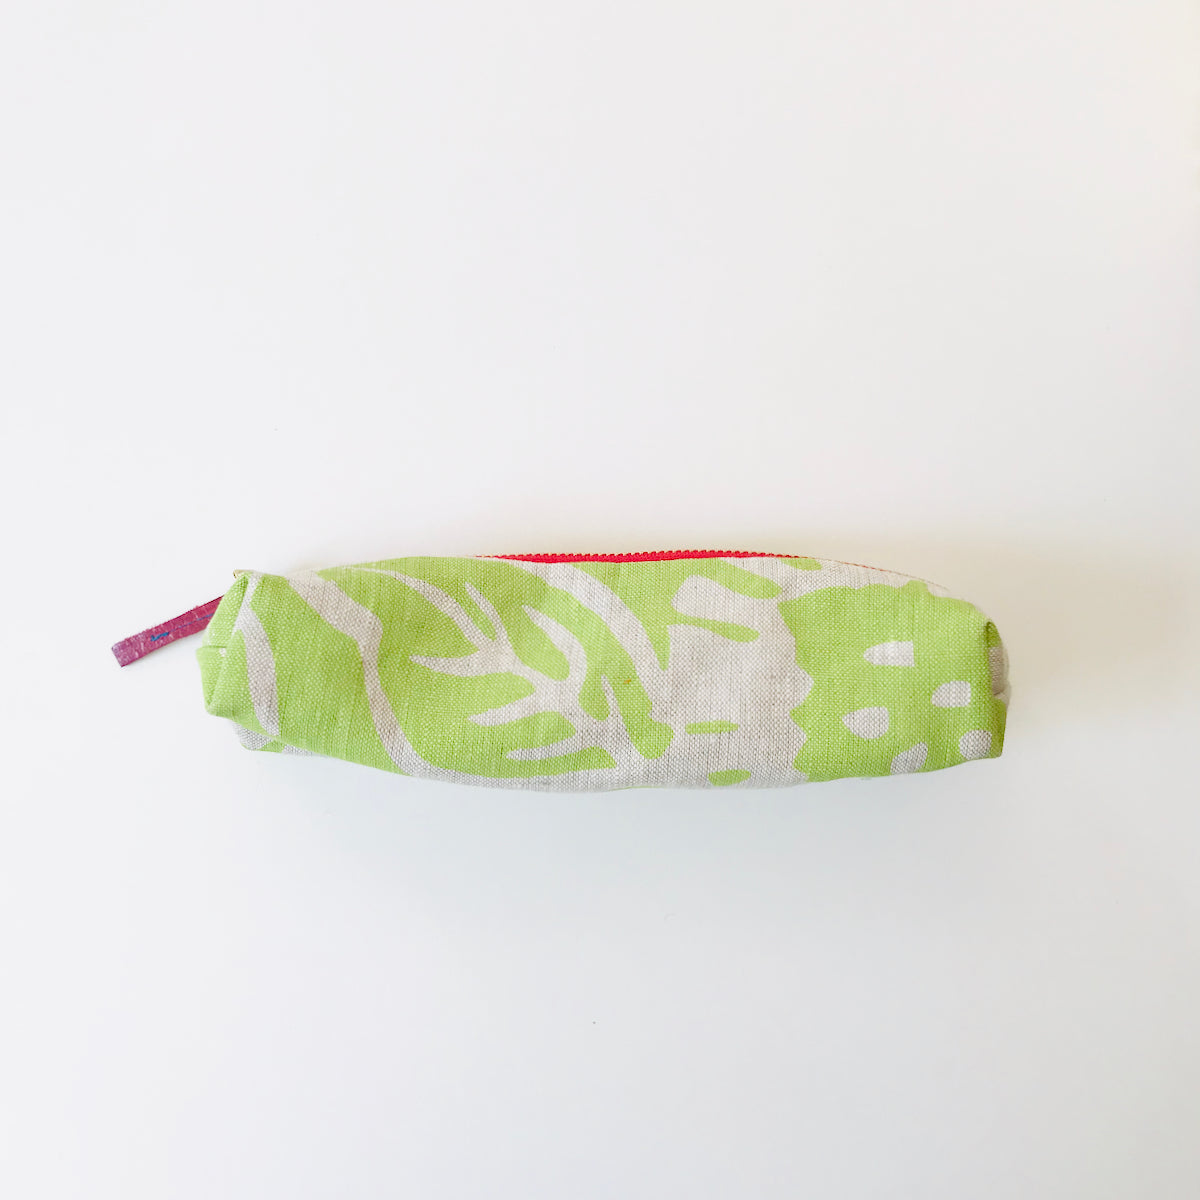 SHIPS NOW! VINTAGE GREEN GARDEN PENCIL ZIPPER BAG